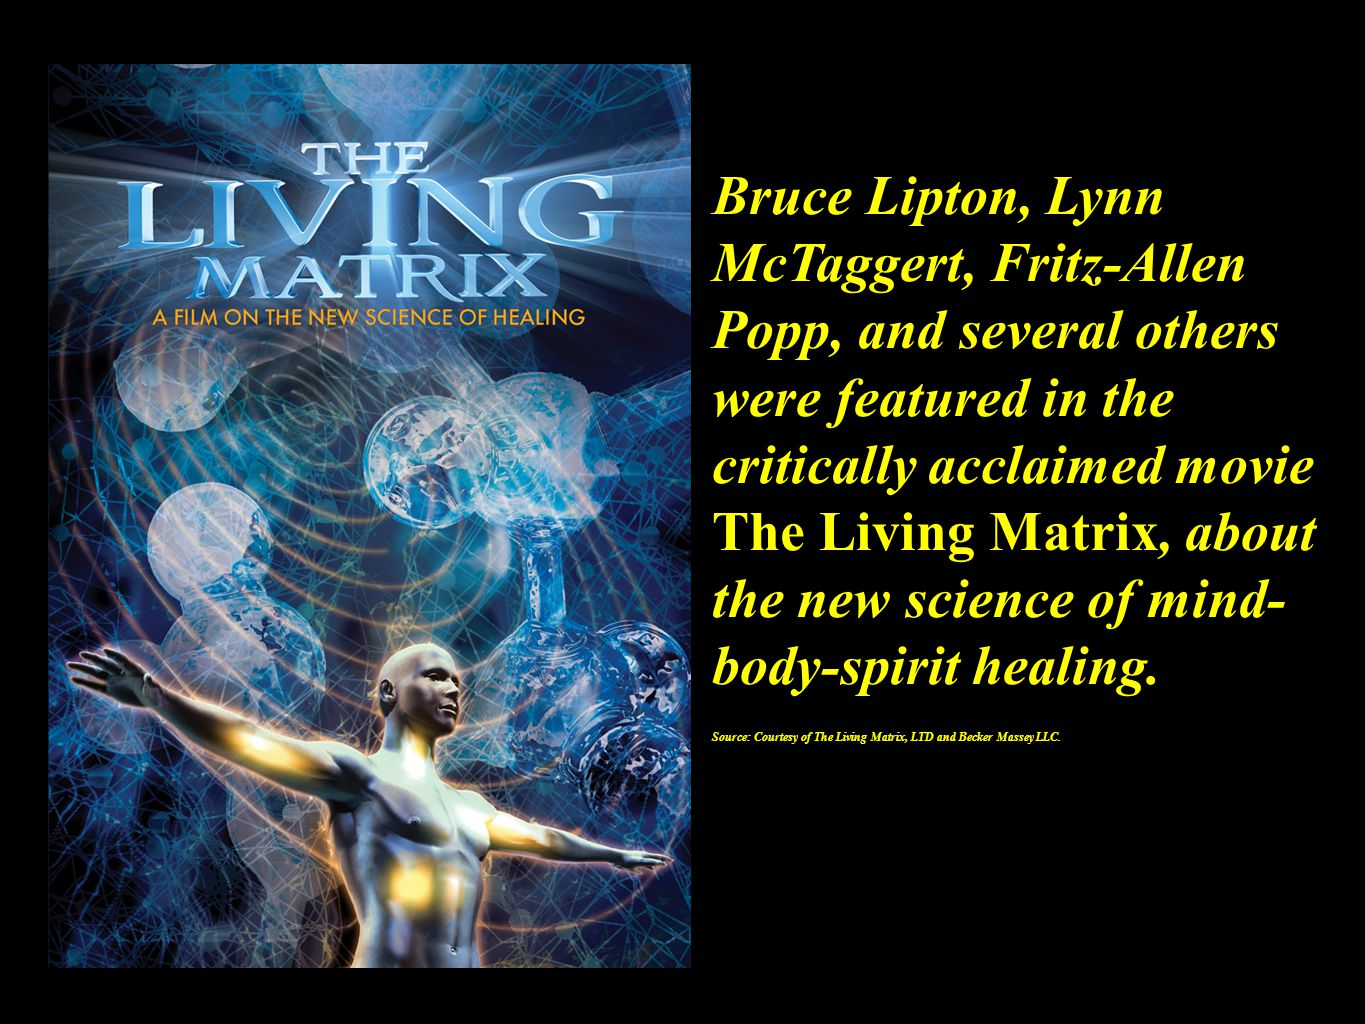 Bruce Lipton, Lynn McTaggert, Fritz-Allen Popp, and several others were featured in the critically acclaimed movie The Living Matrix, about the new science of mind- body-spirit healing.